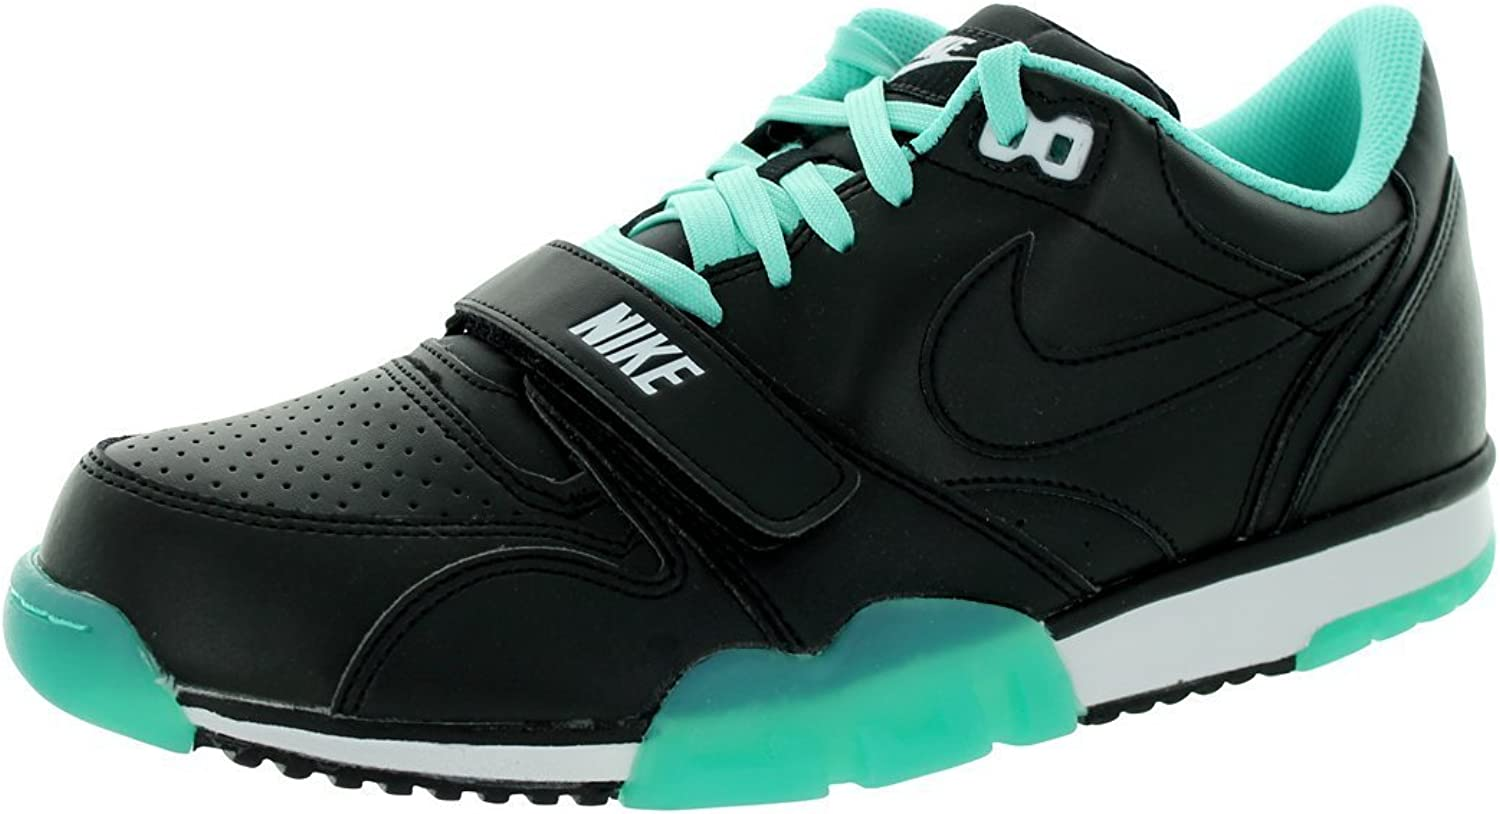 Nike Air Trainer 1 Low Sneaker St 637 995 100